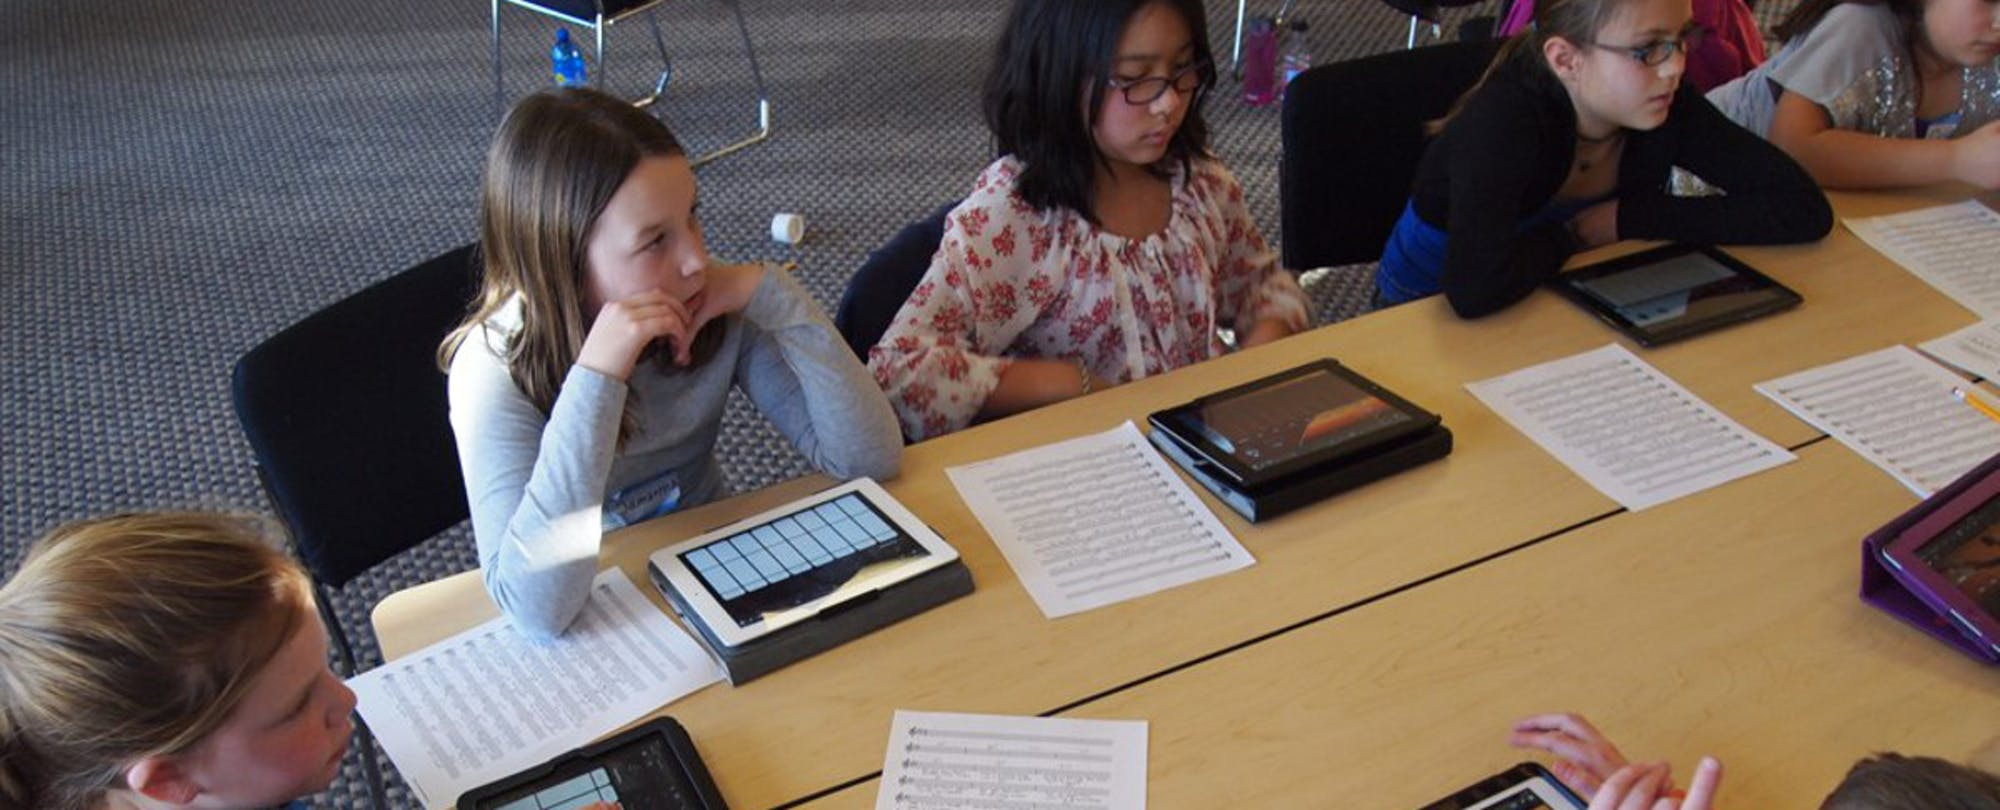 What Separates a Good Blended Learning Program From a Bad One?